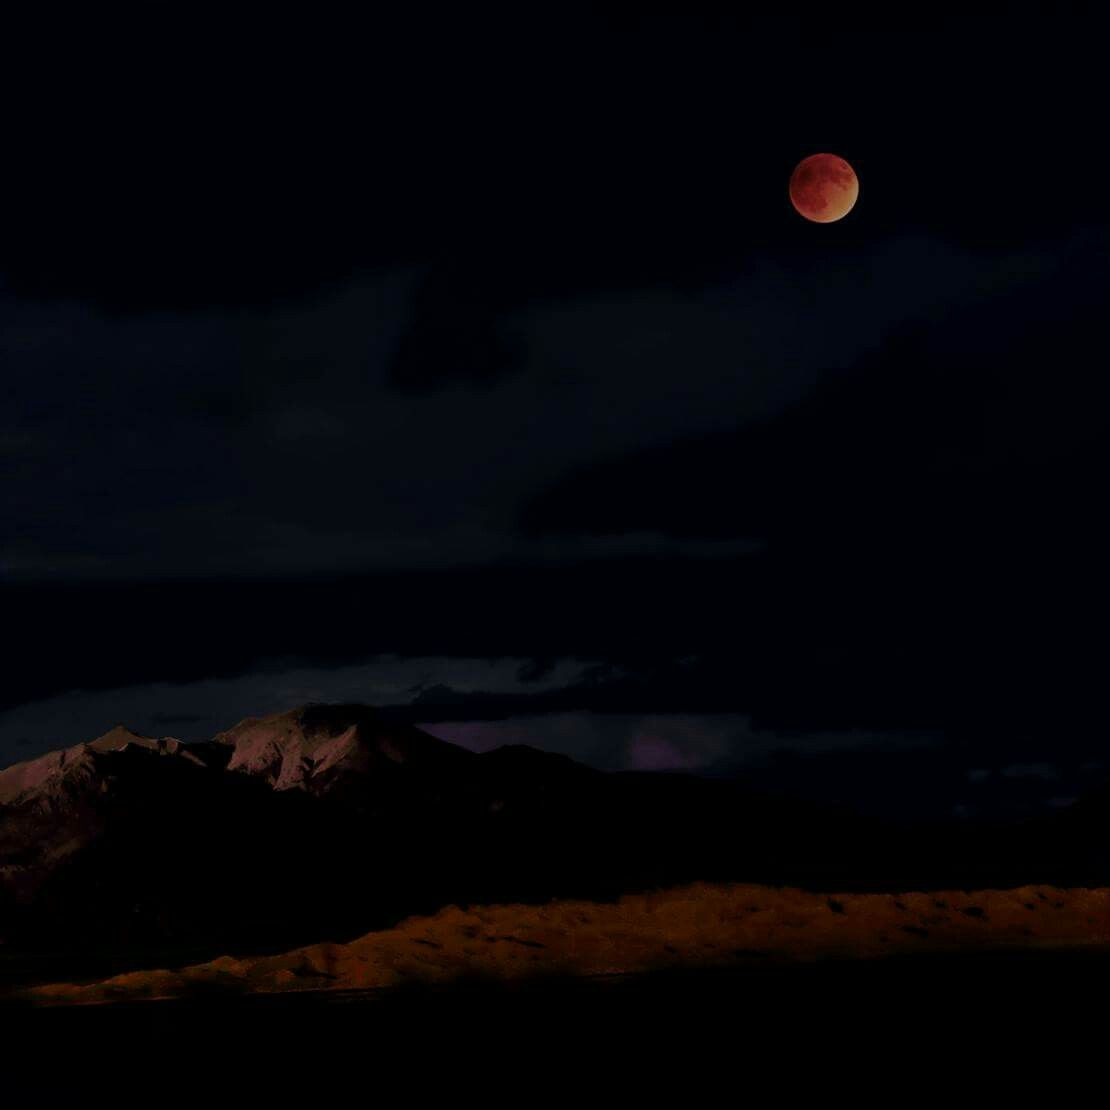 Lunar Eclipse Over Great Sand Dunes and Mount Herard NPS/Patrick Myers 2015  Seeing Great Sand Dunes in full moonlight is amazing enough, but seeing a lunar eclipse over them is out of this world!